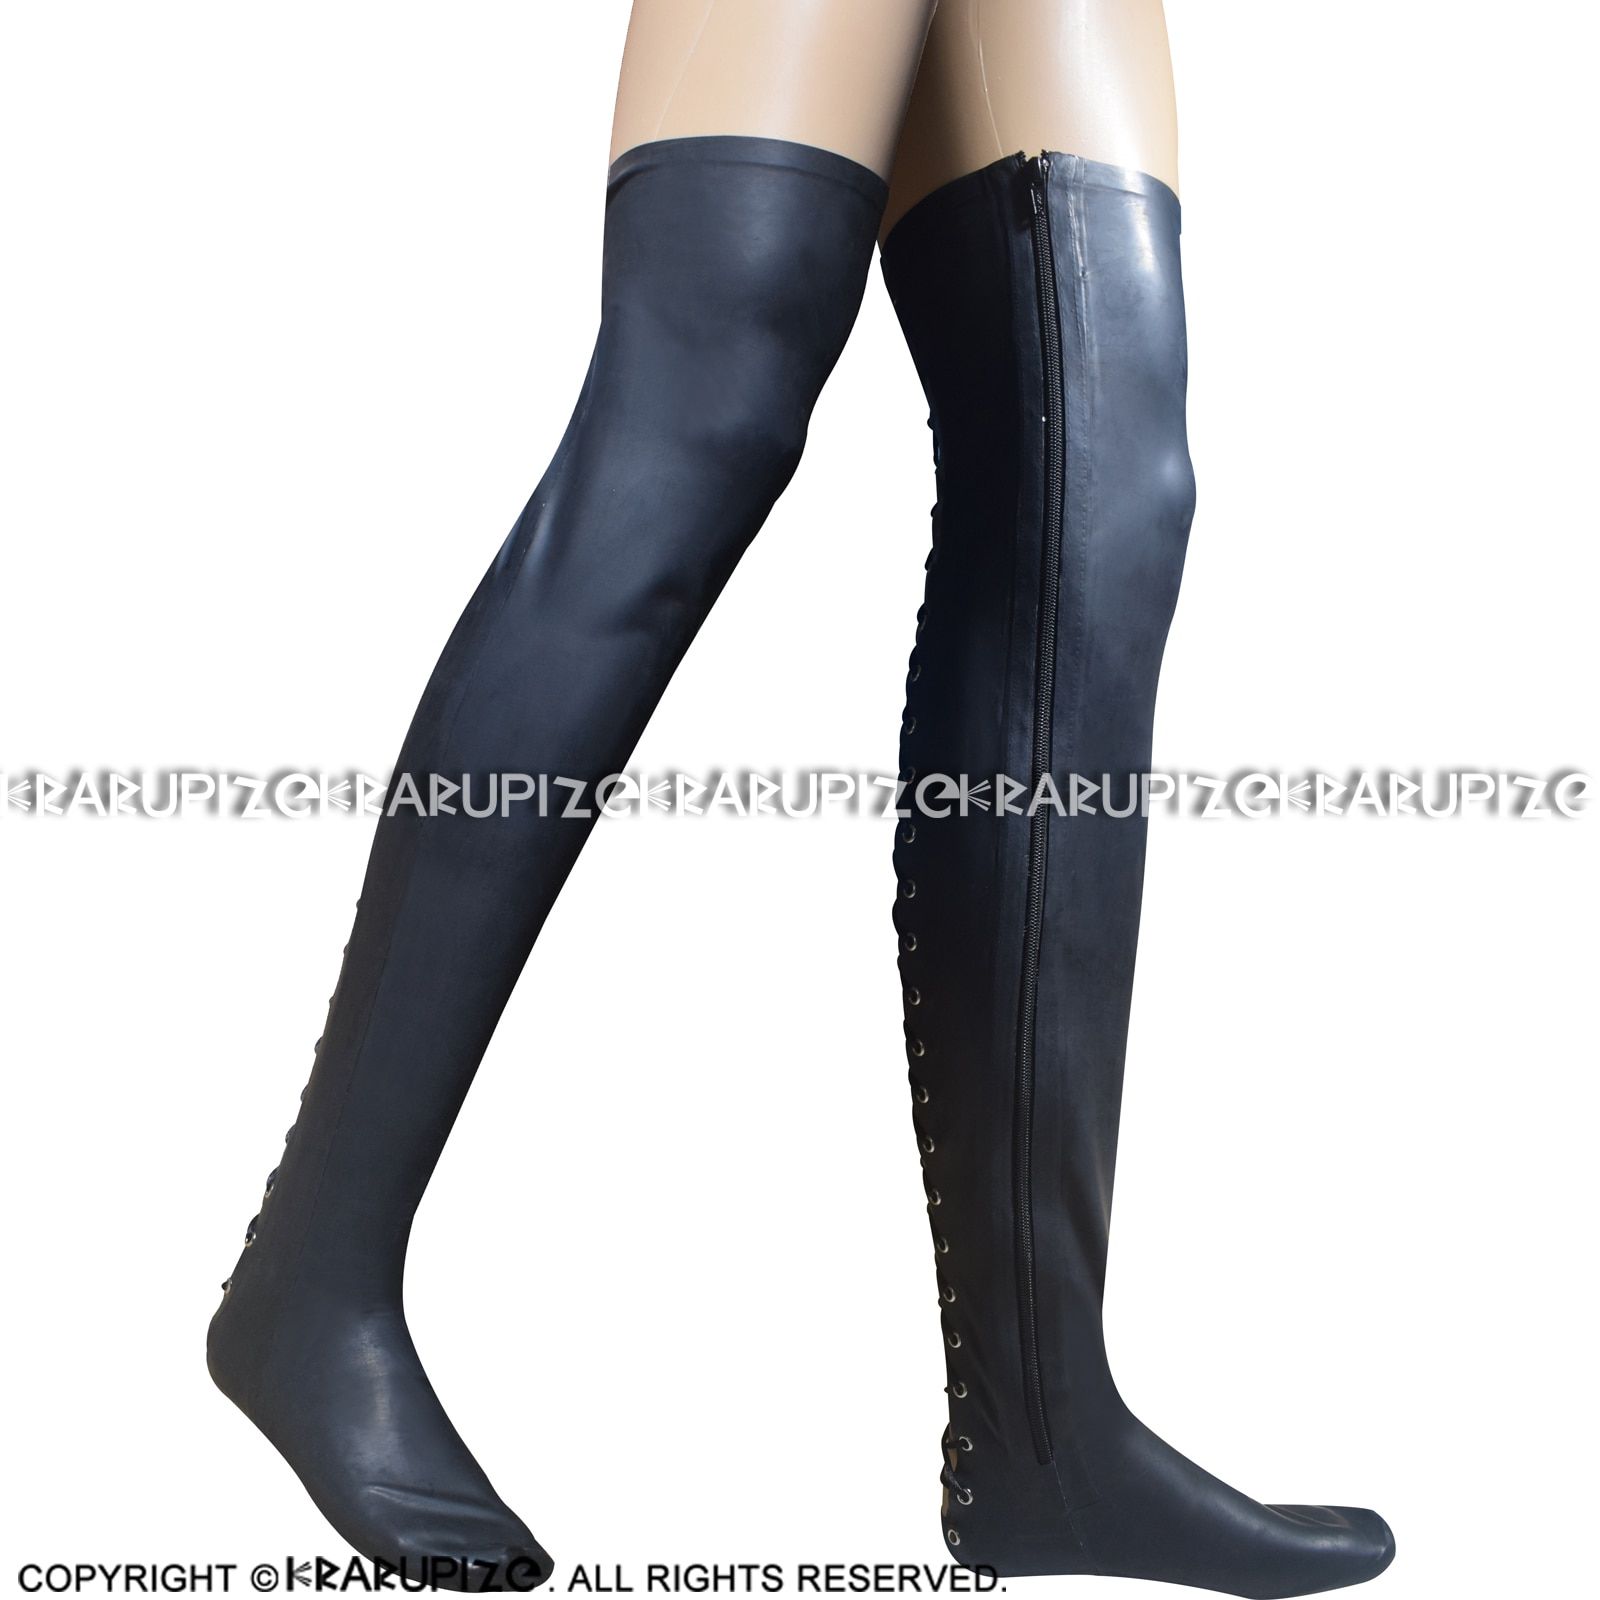 Autumn Black Sexy Long Latex Thigh High Stockings With Zippers At Sides And Lacing Back Rubber Stocking WZ-0062